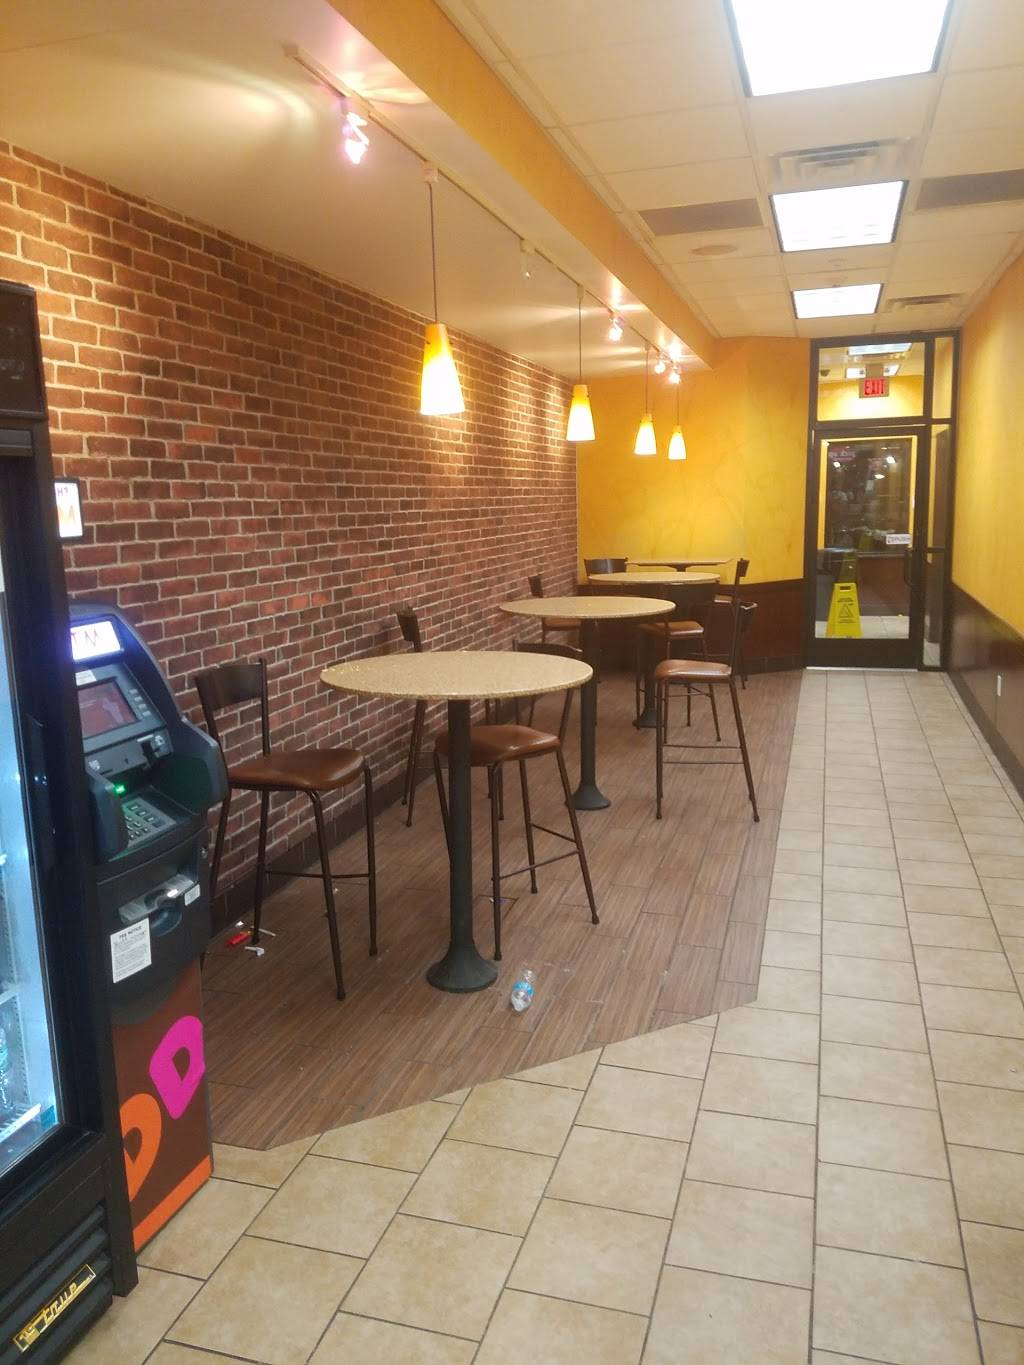 Dunkin Donuts   cafe   56 Park Ave, Rutherford, NJ 07070, USA   2019350346 OR +1 201-935-0346